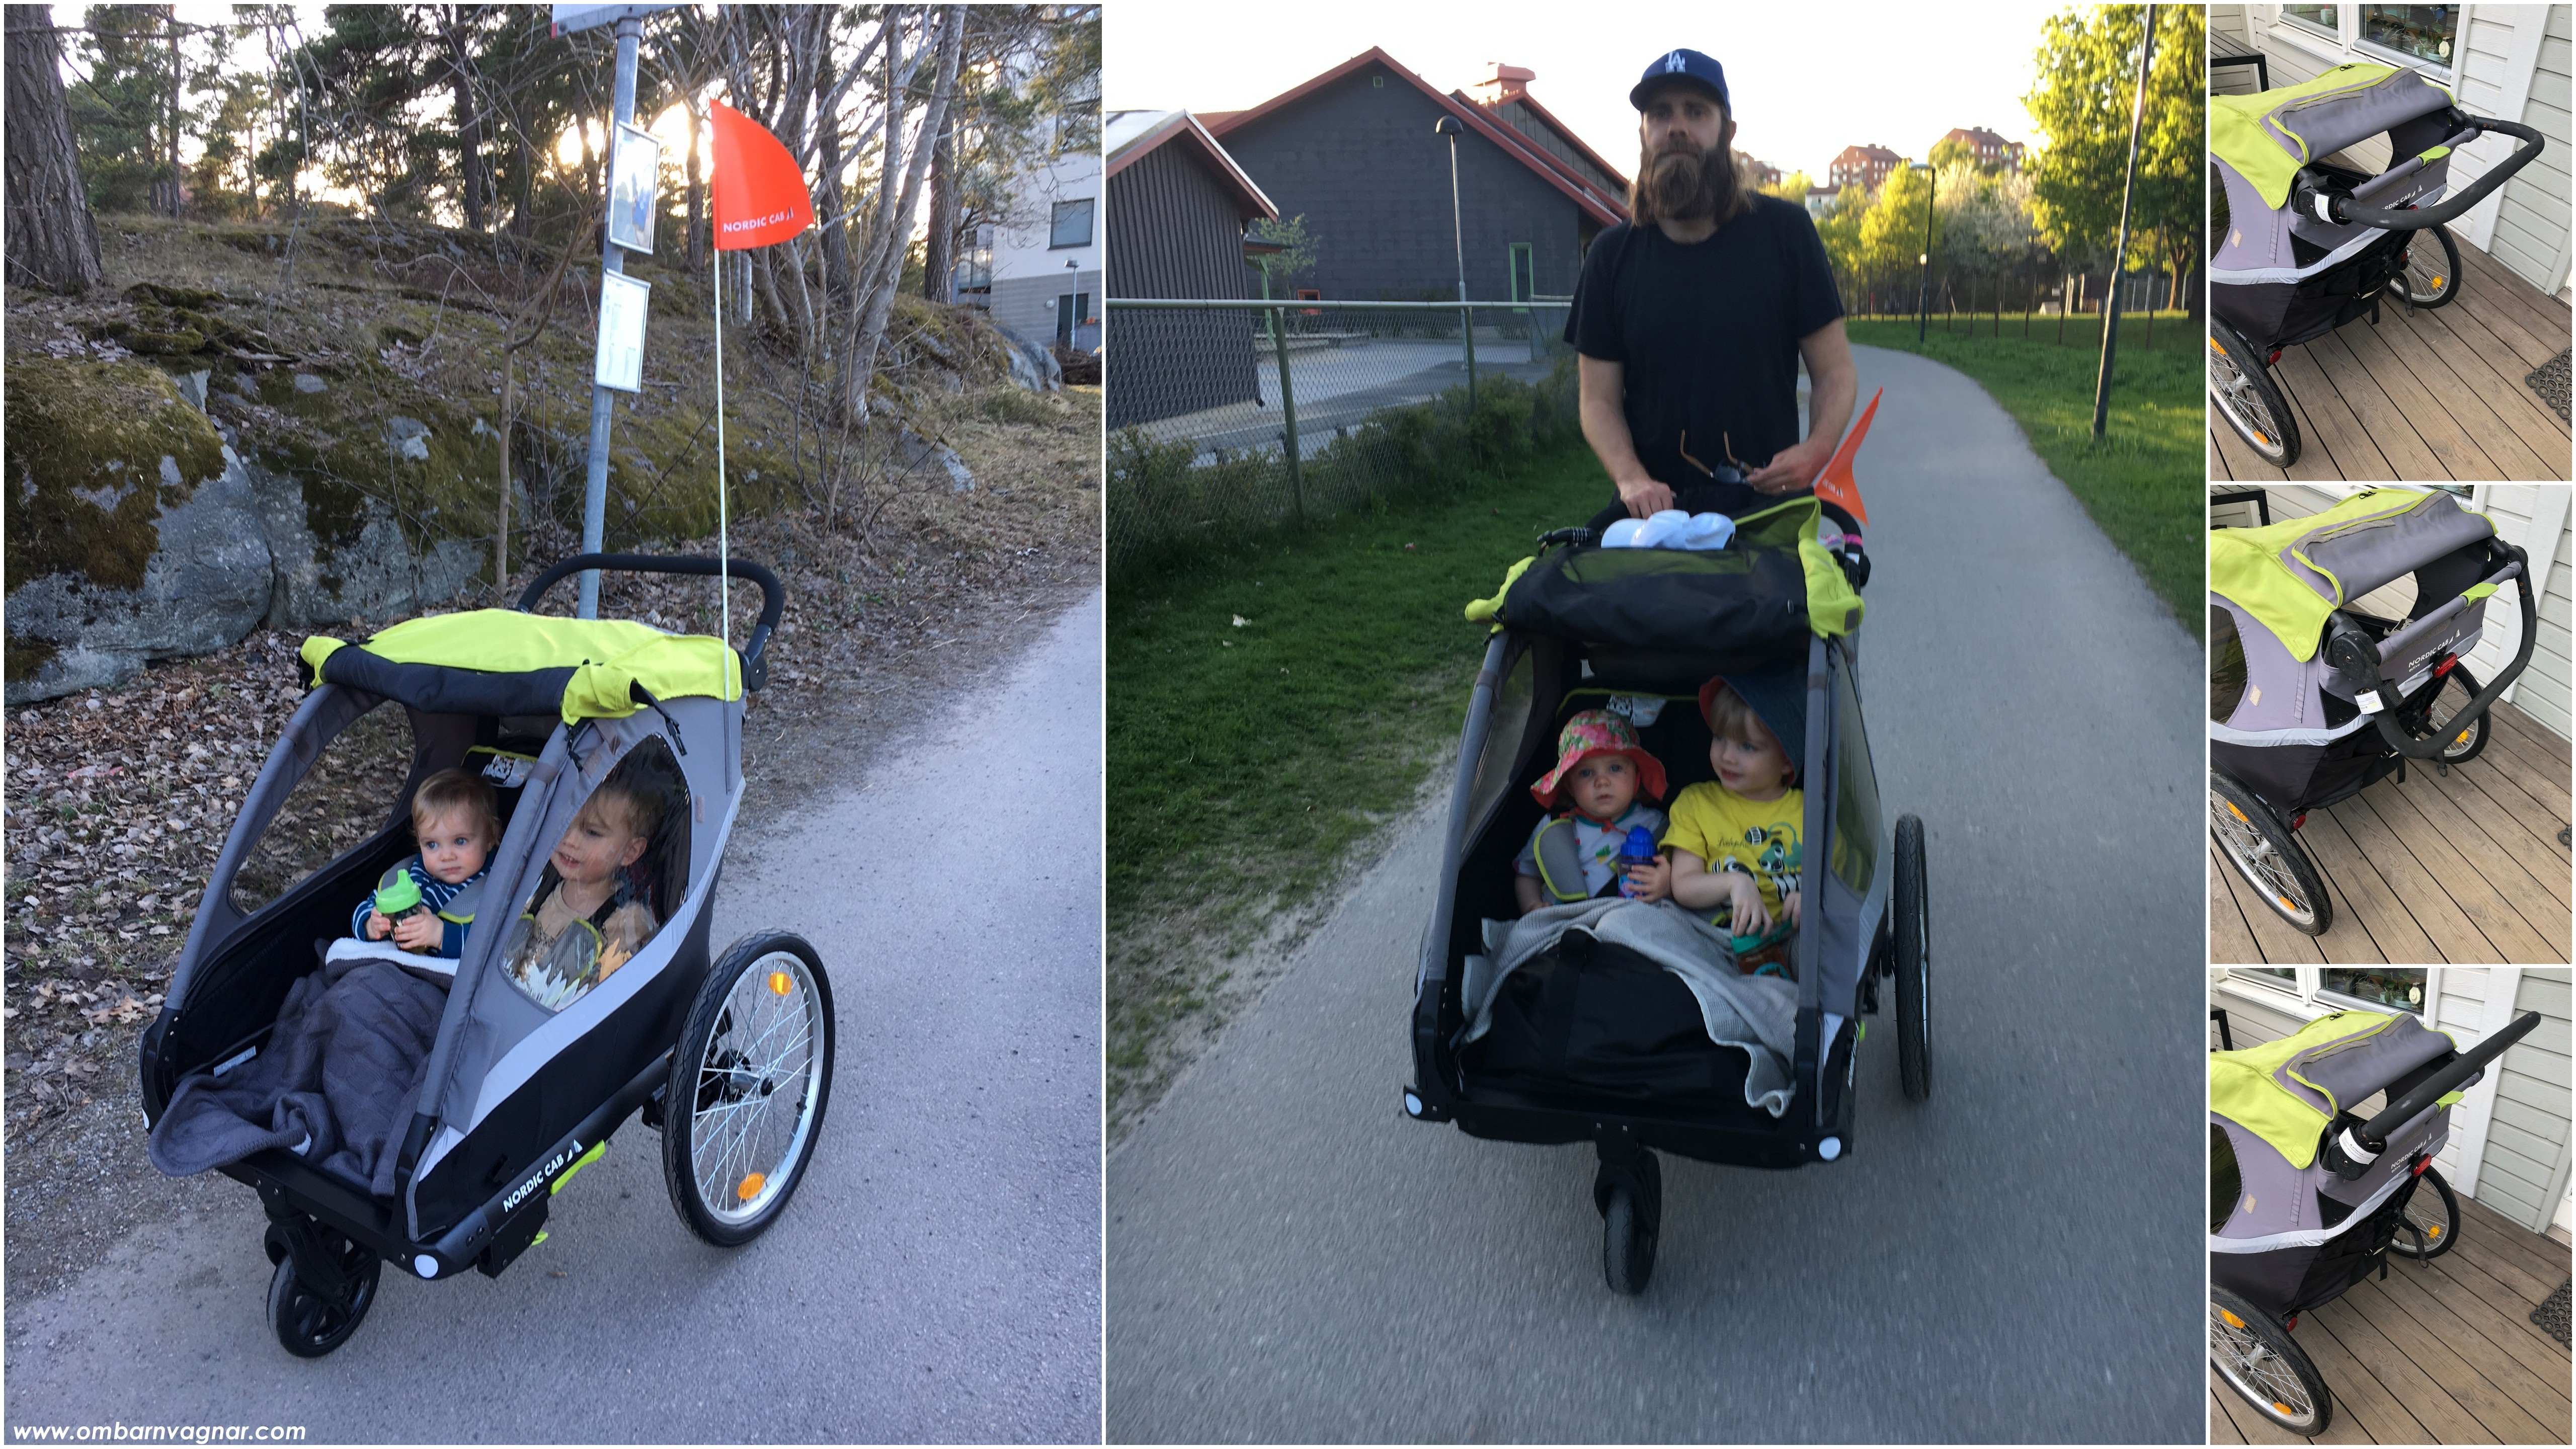 Nordic Cab Active 2-in-1 Cykelvagn som barnvagn, promenera med vagnen